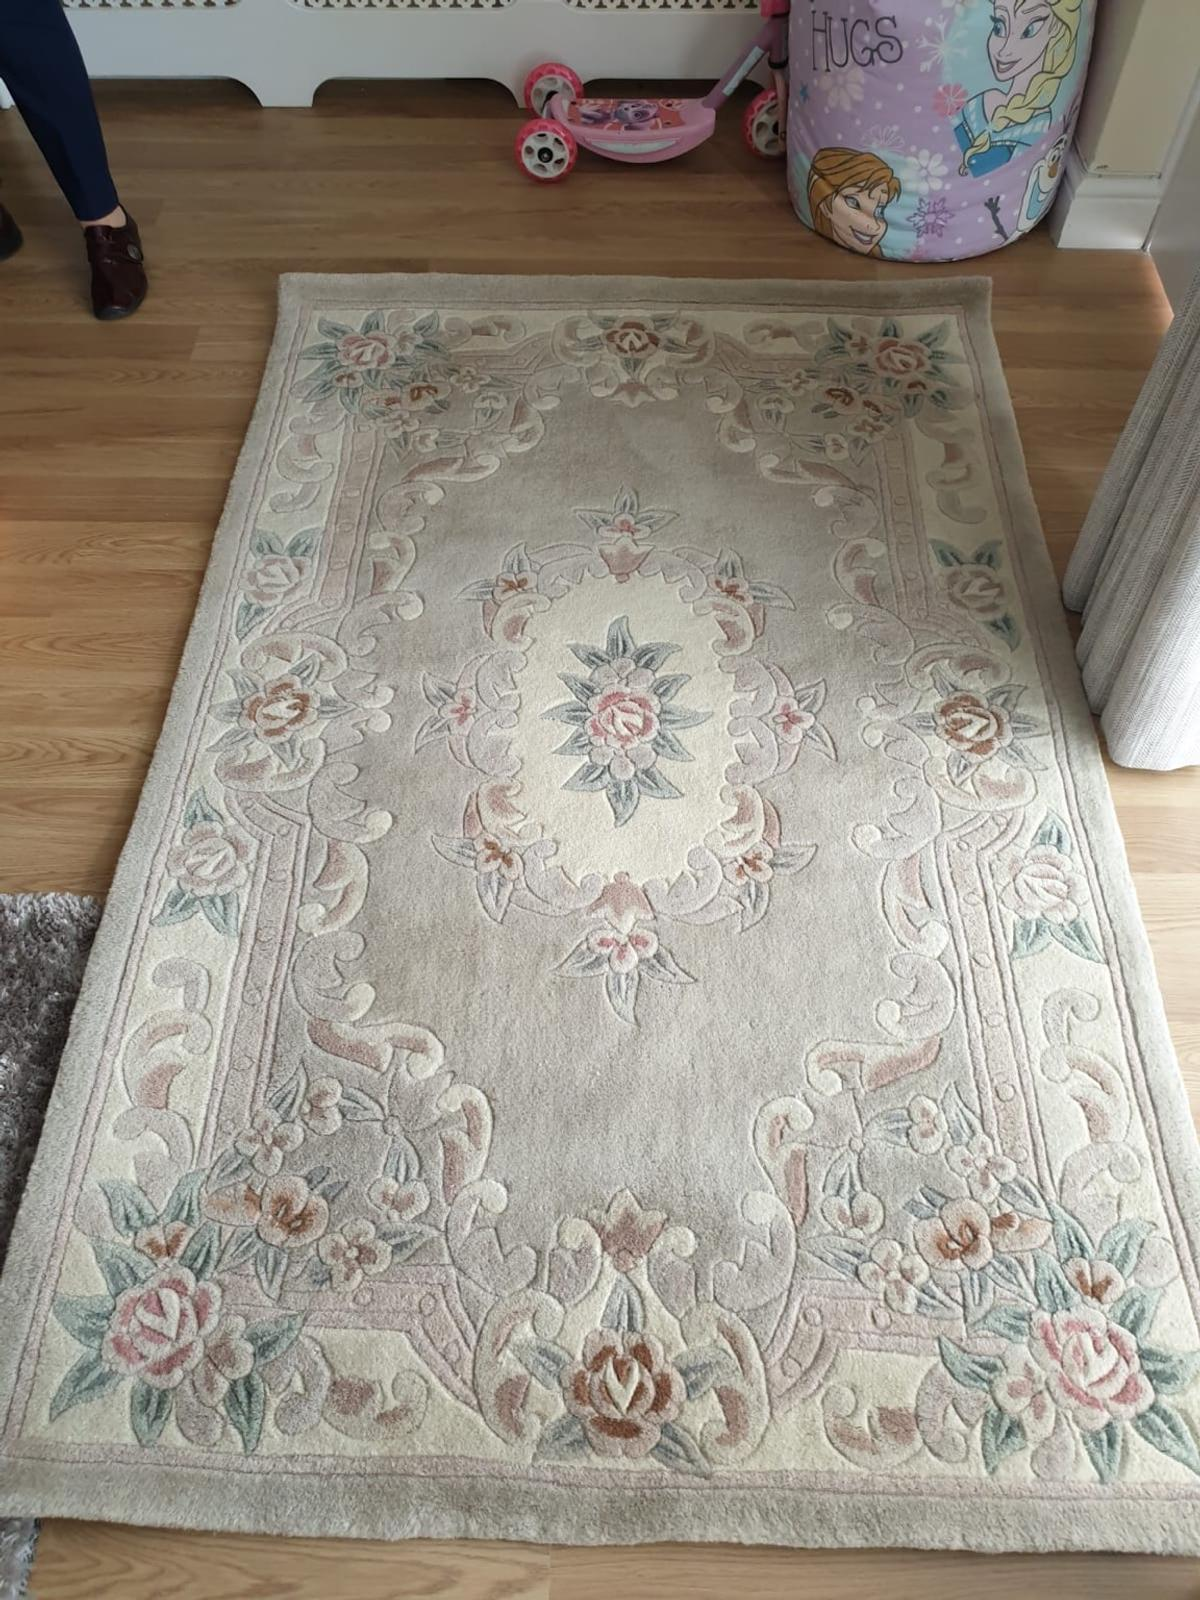 Immaculate Condition Chinese Rug